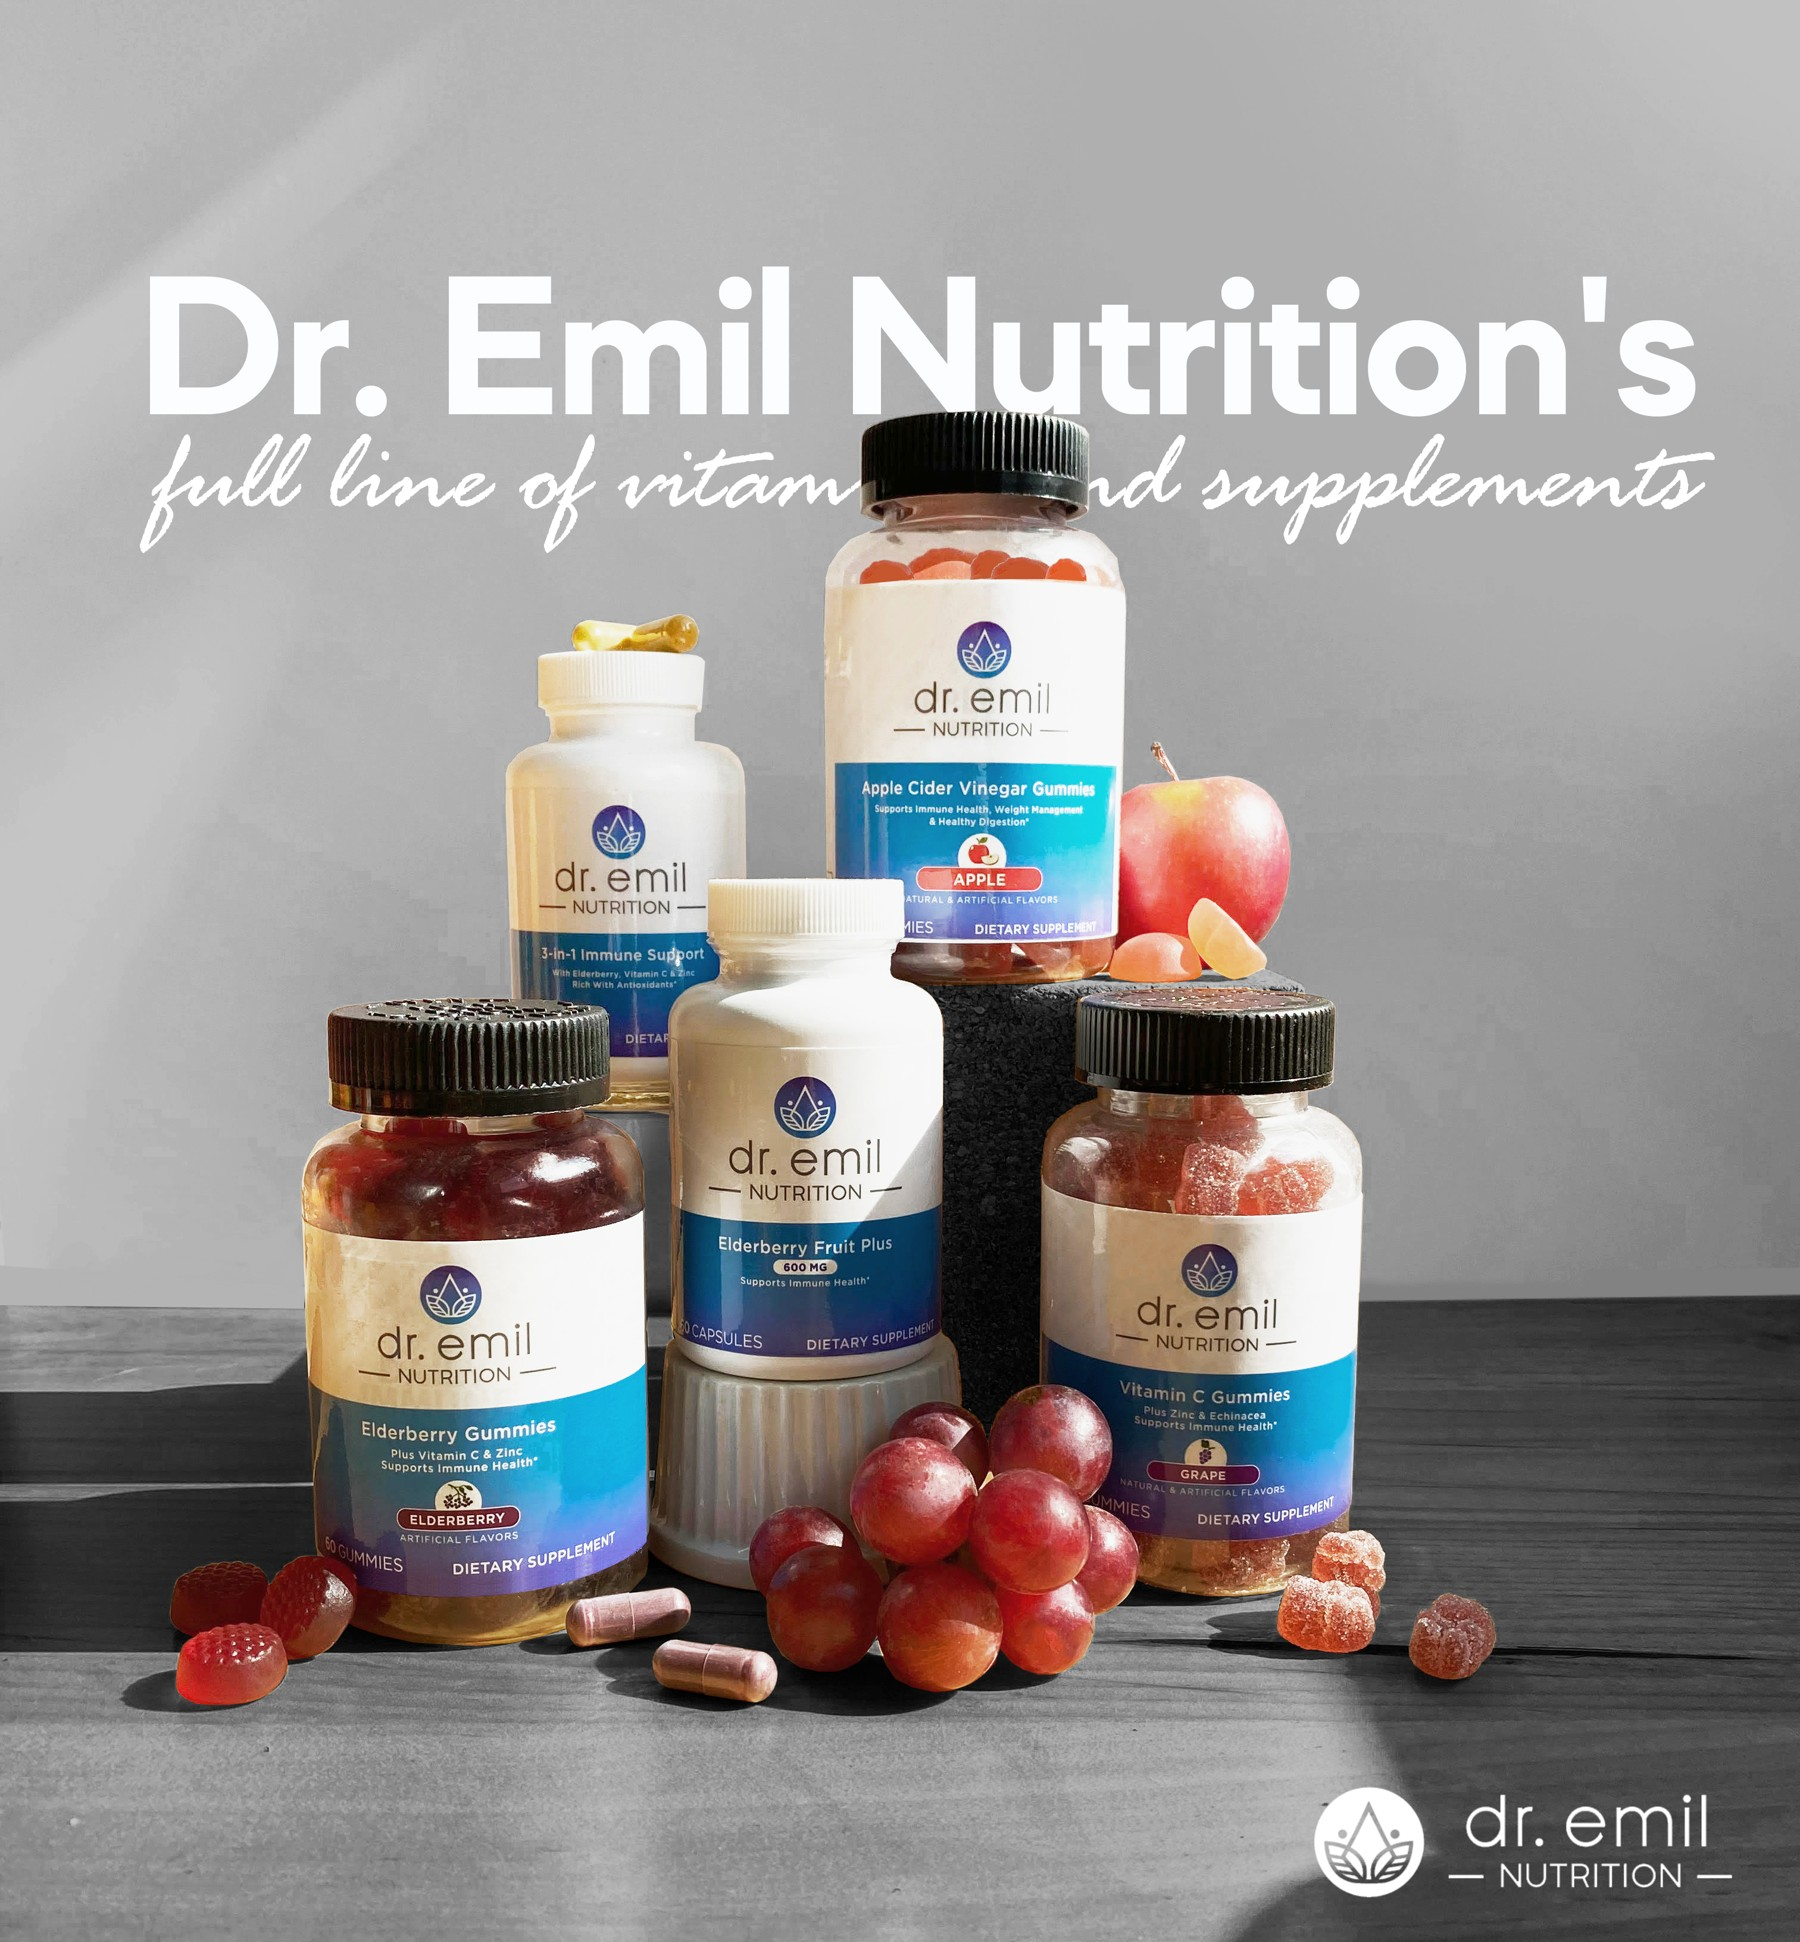 Dr. Emil Nutrition Immunity products